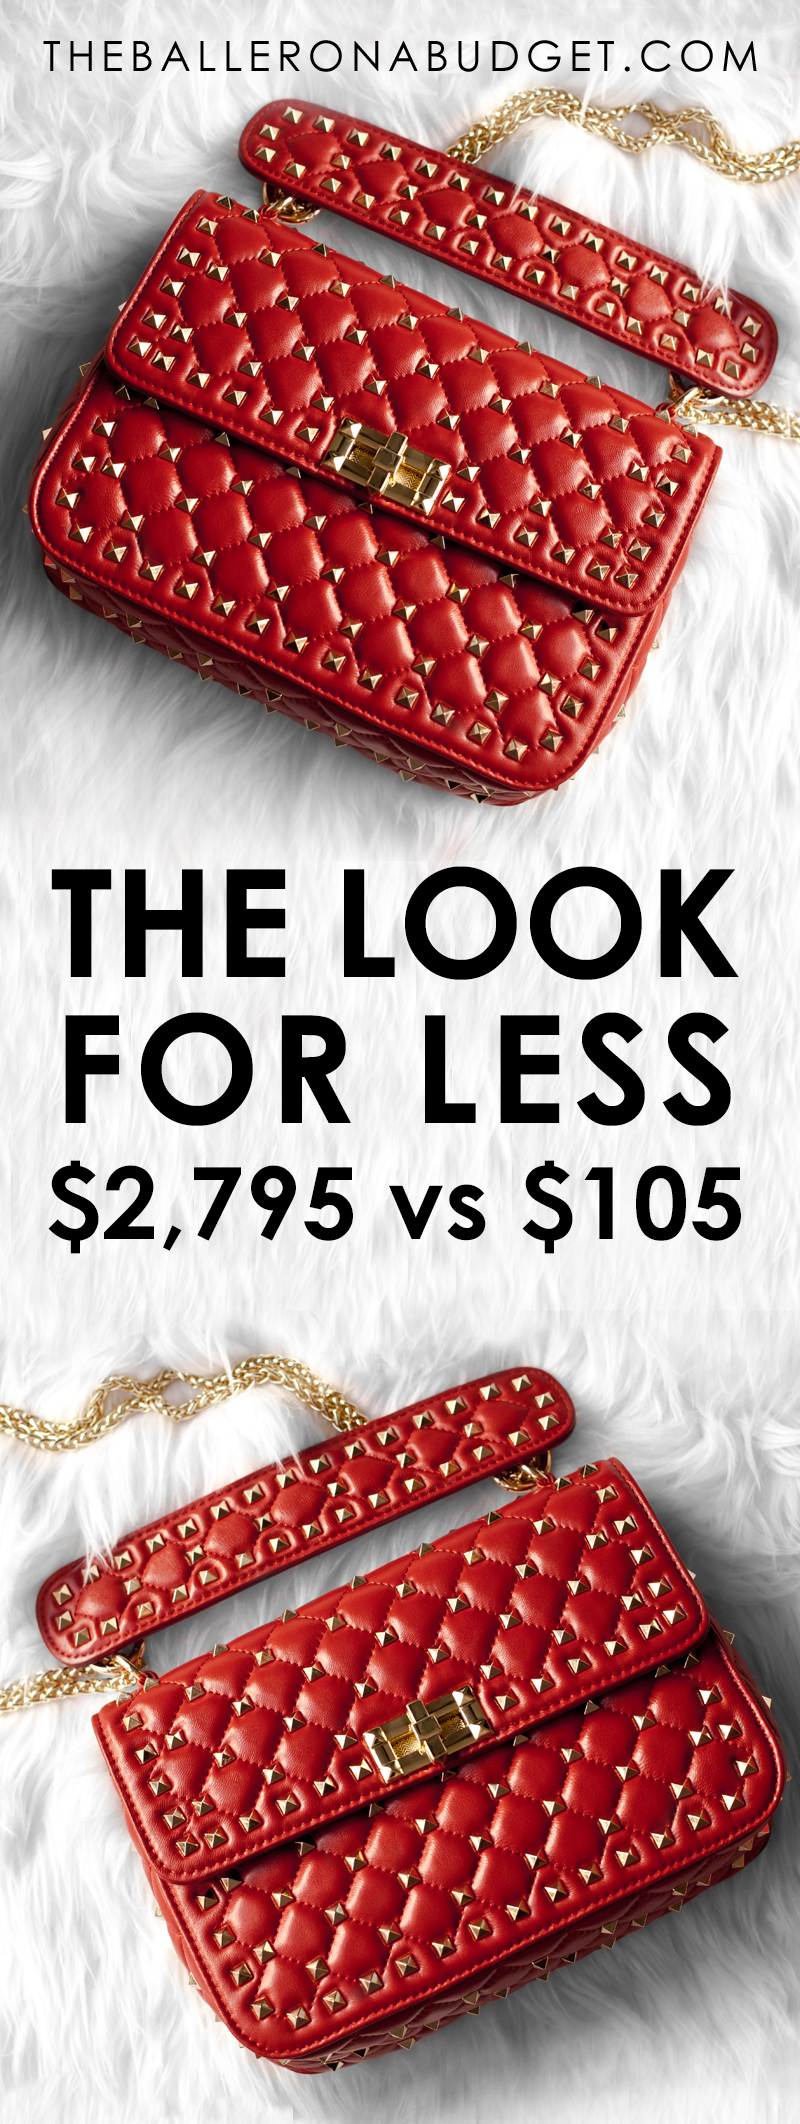 Looking for a bag that's stylistically similar to the $3,000 Valentino Rockstud Top Handle Bag without the expensive price tag? This handbag is made from genuine sheepskin and is only $109! - www.theballeronabudget